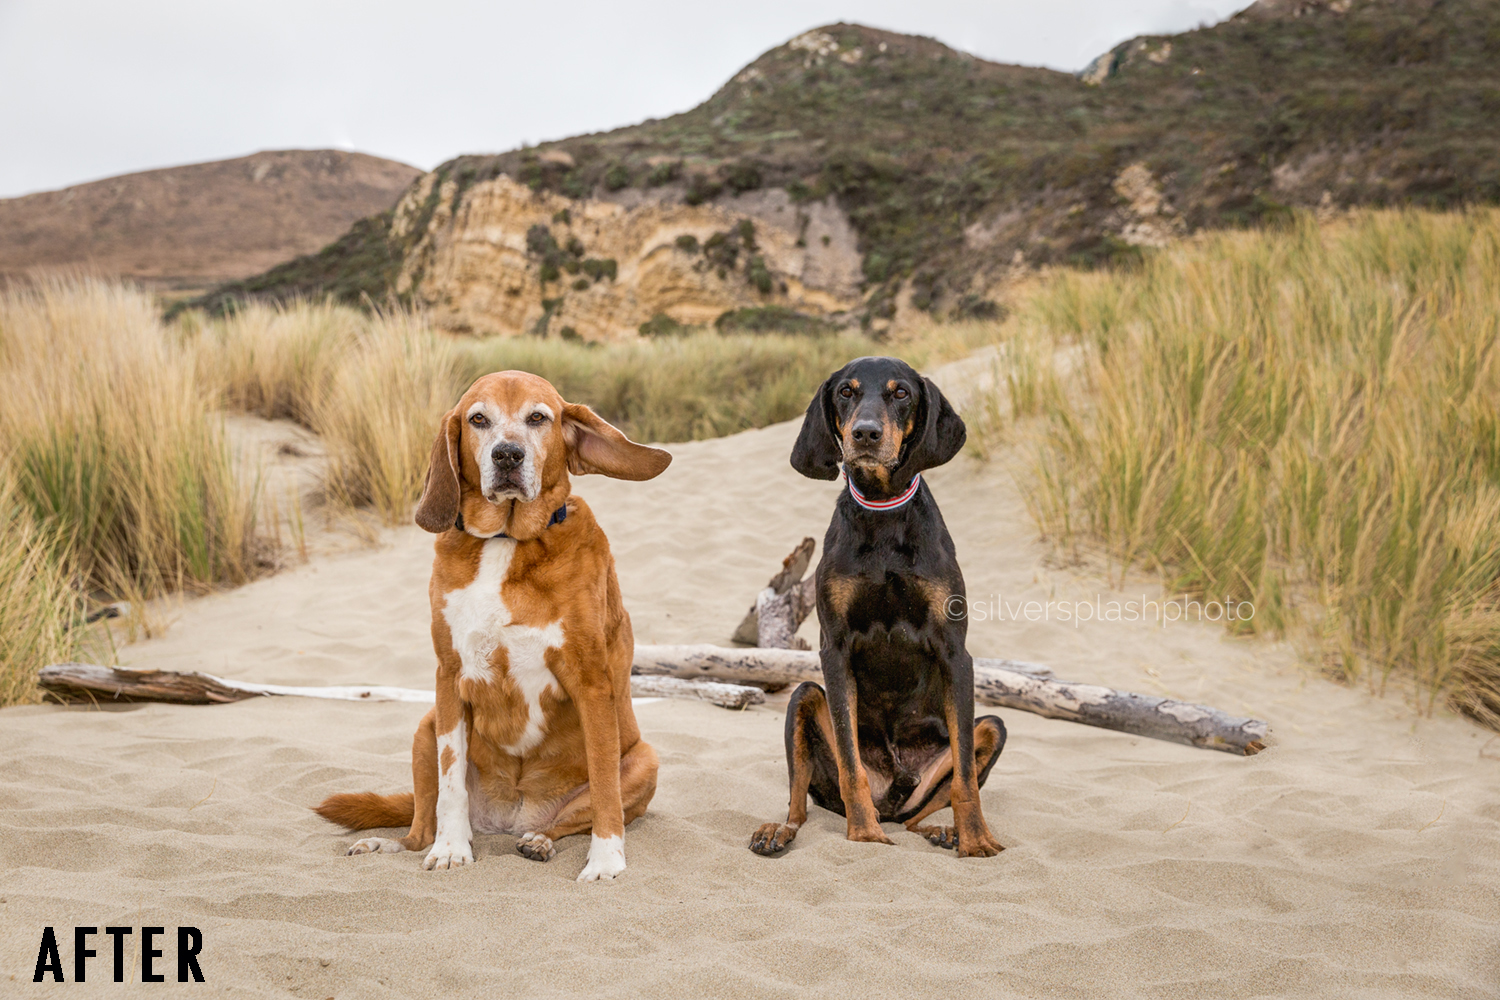 Not to worry, through digital retouching I removed leashes, the owner's legs, and Harley's swapped Harley's closed eyes with her open eyes from another image.